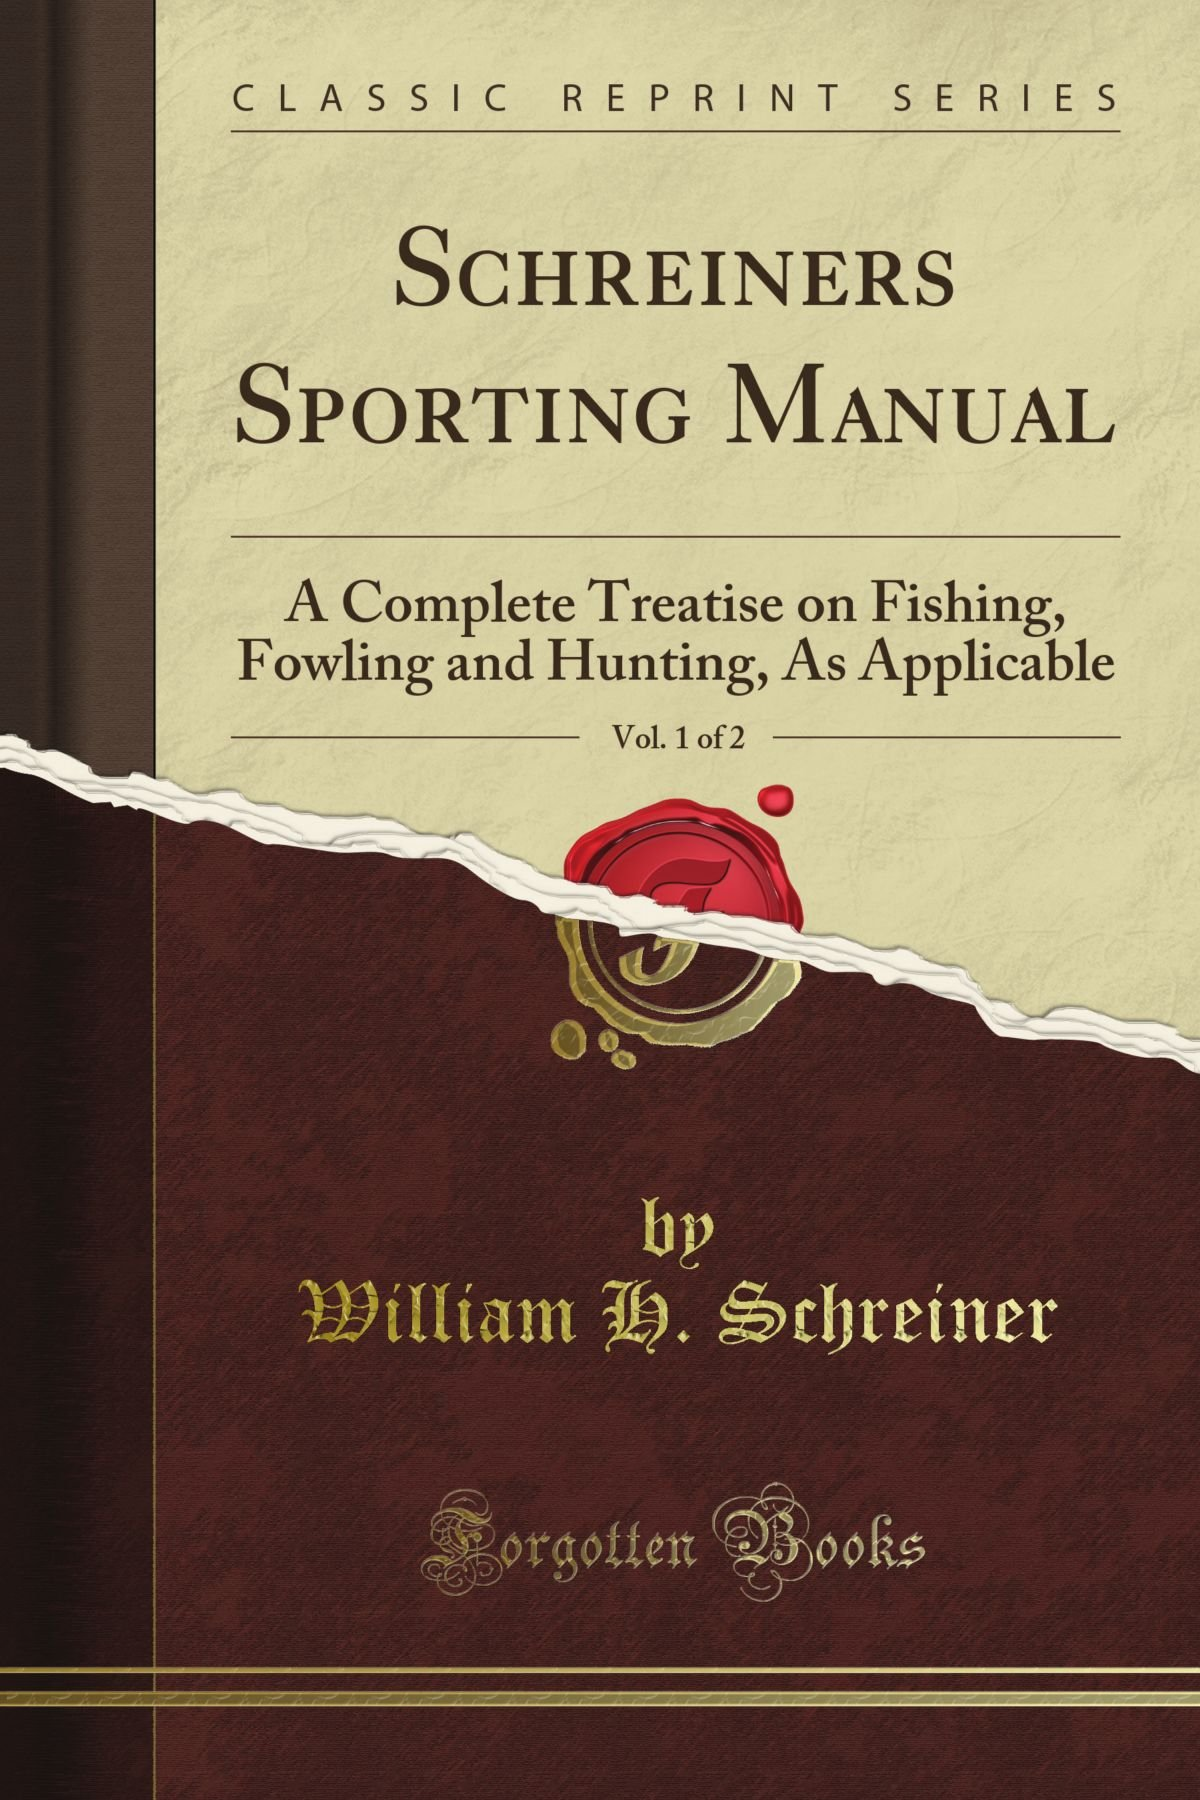 Read Online Schreiner's Sporting Manual: A Complete Treatise on Fishing, Fowling and Hunting, As Applicable, Vol. 1 of 2 (Classic Reprint) ebook